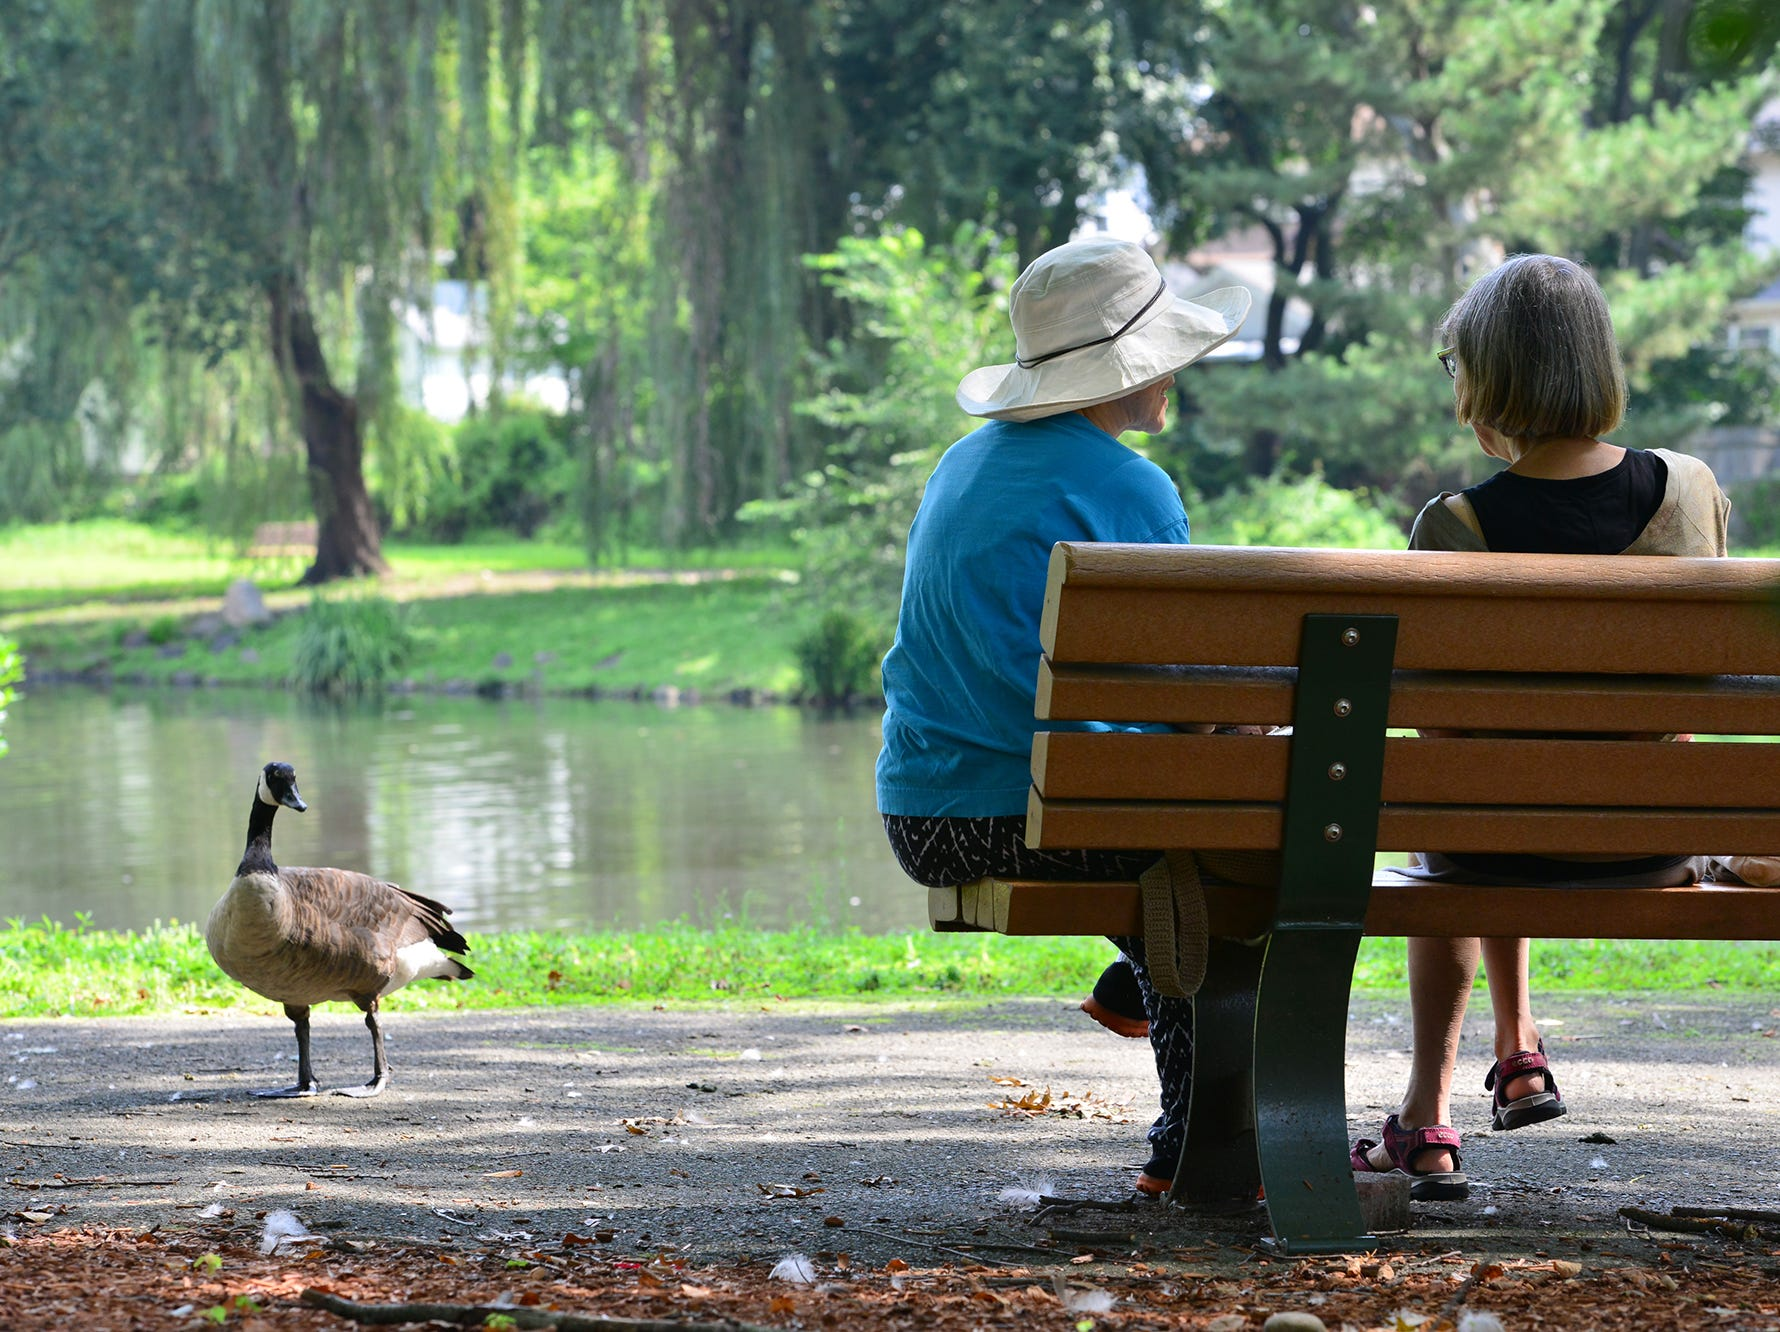 From left, Miriam Holmes, of Teaneck, and Harriet Finck, of Ridgewood, chat in the shade at Cooper's Pond Park in Bergenfield on Monday morning August 6, 2018.